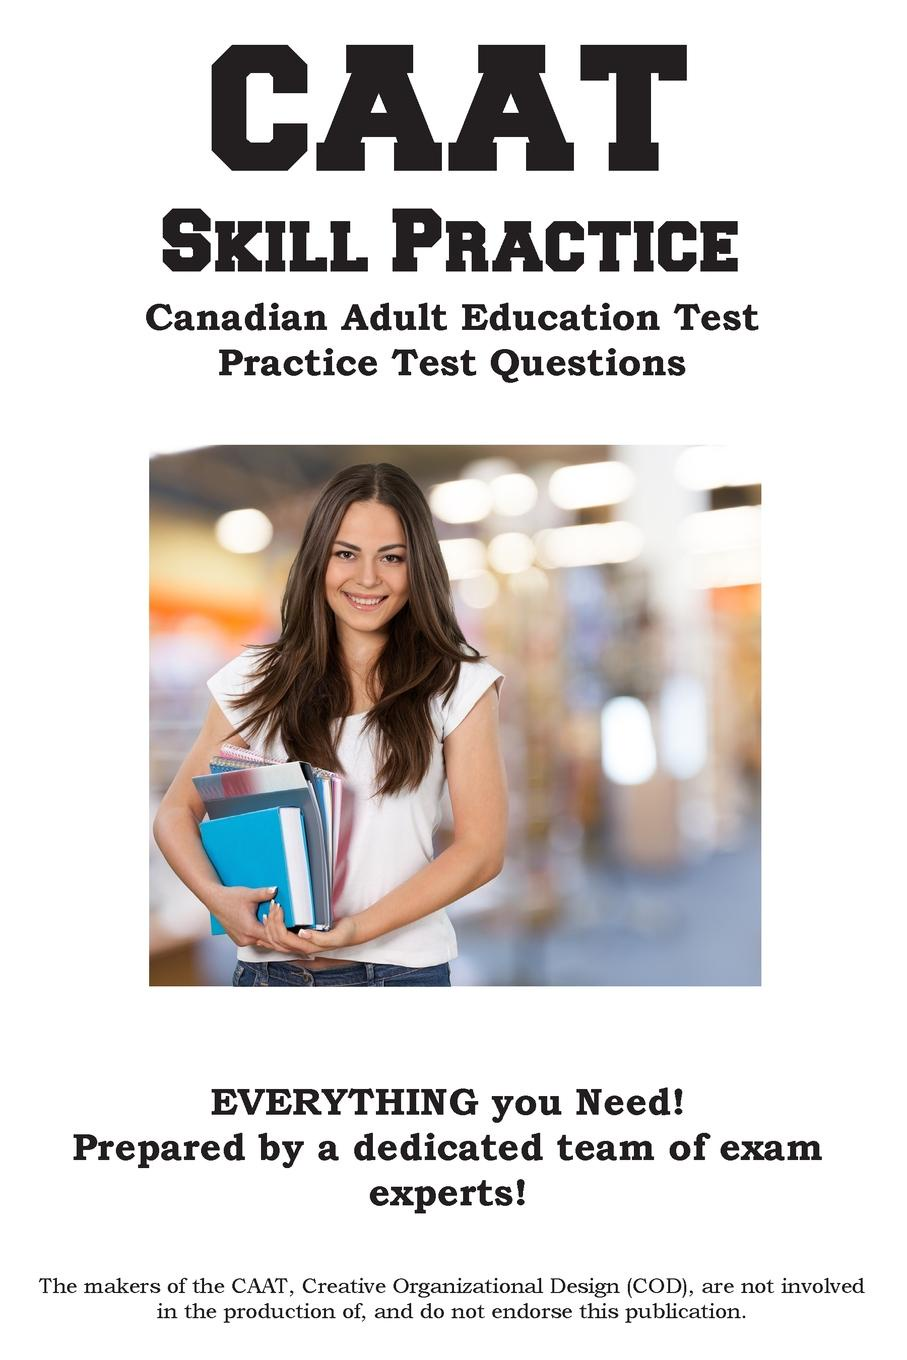 Complete Test Preparation Inc. CAAT Skill Practice. Canadian Adult Education Test Practice Test Questions quentin docter comptia a practice tests exam 220 901 and exam 220 902